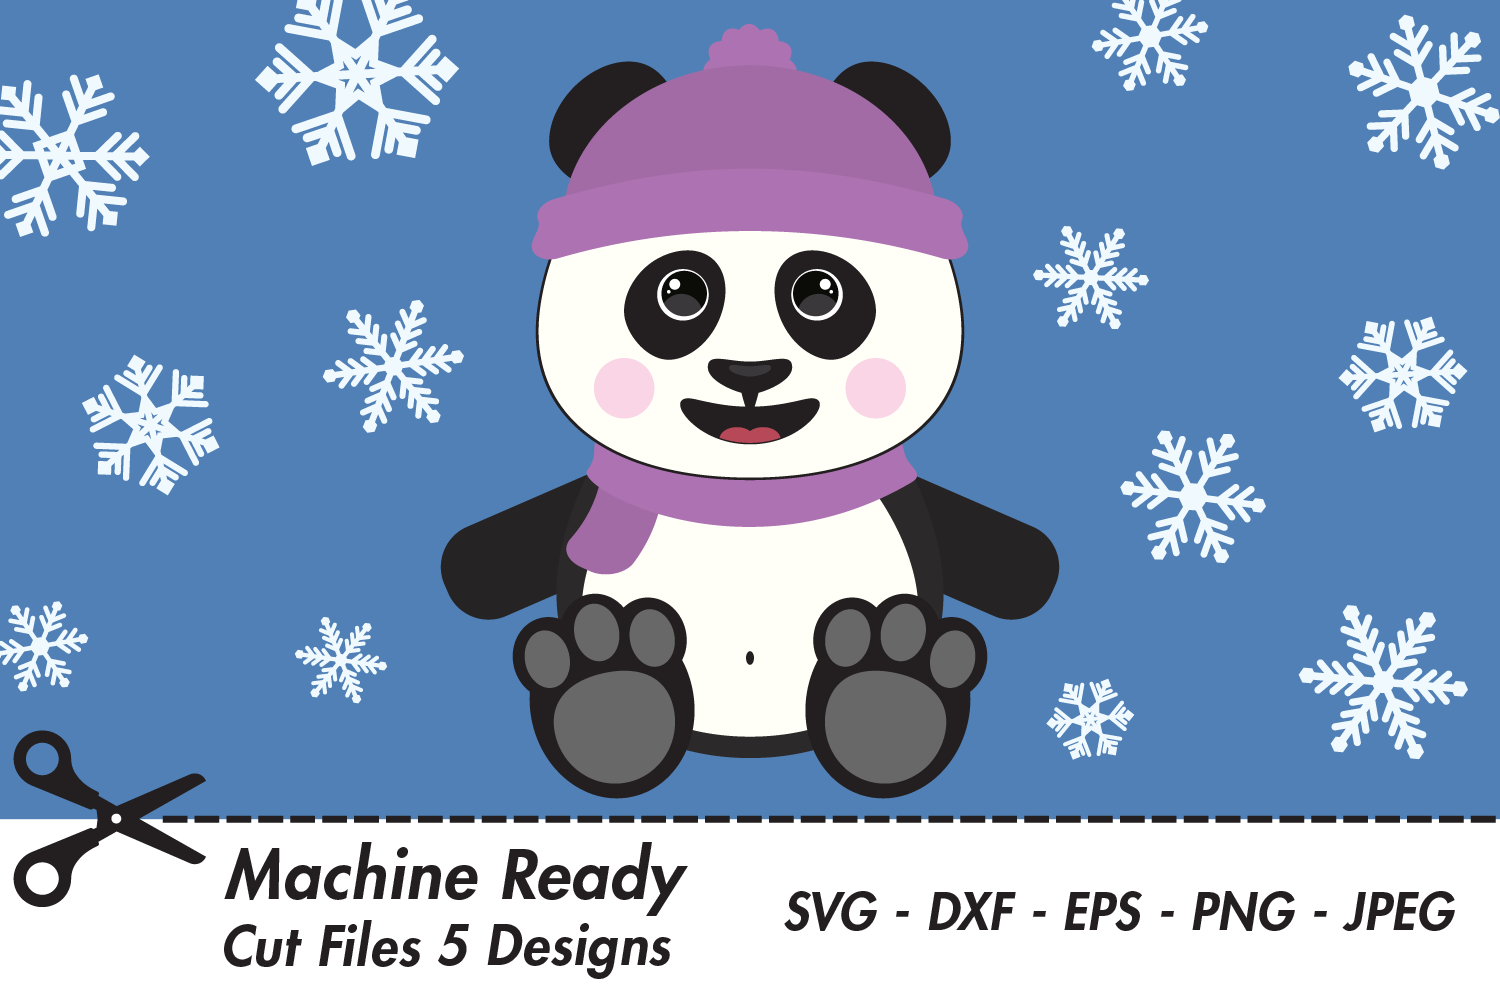 Download Free Cute Girl Panda Bear With Snowflakes Graphic By Captaincreative for Cricut Explore, Silhouette and other cutting machines.